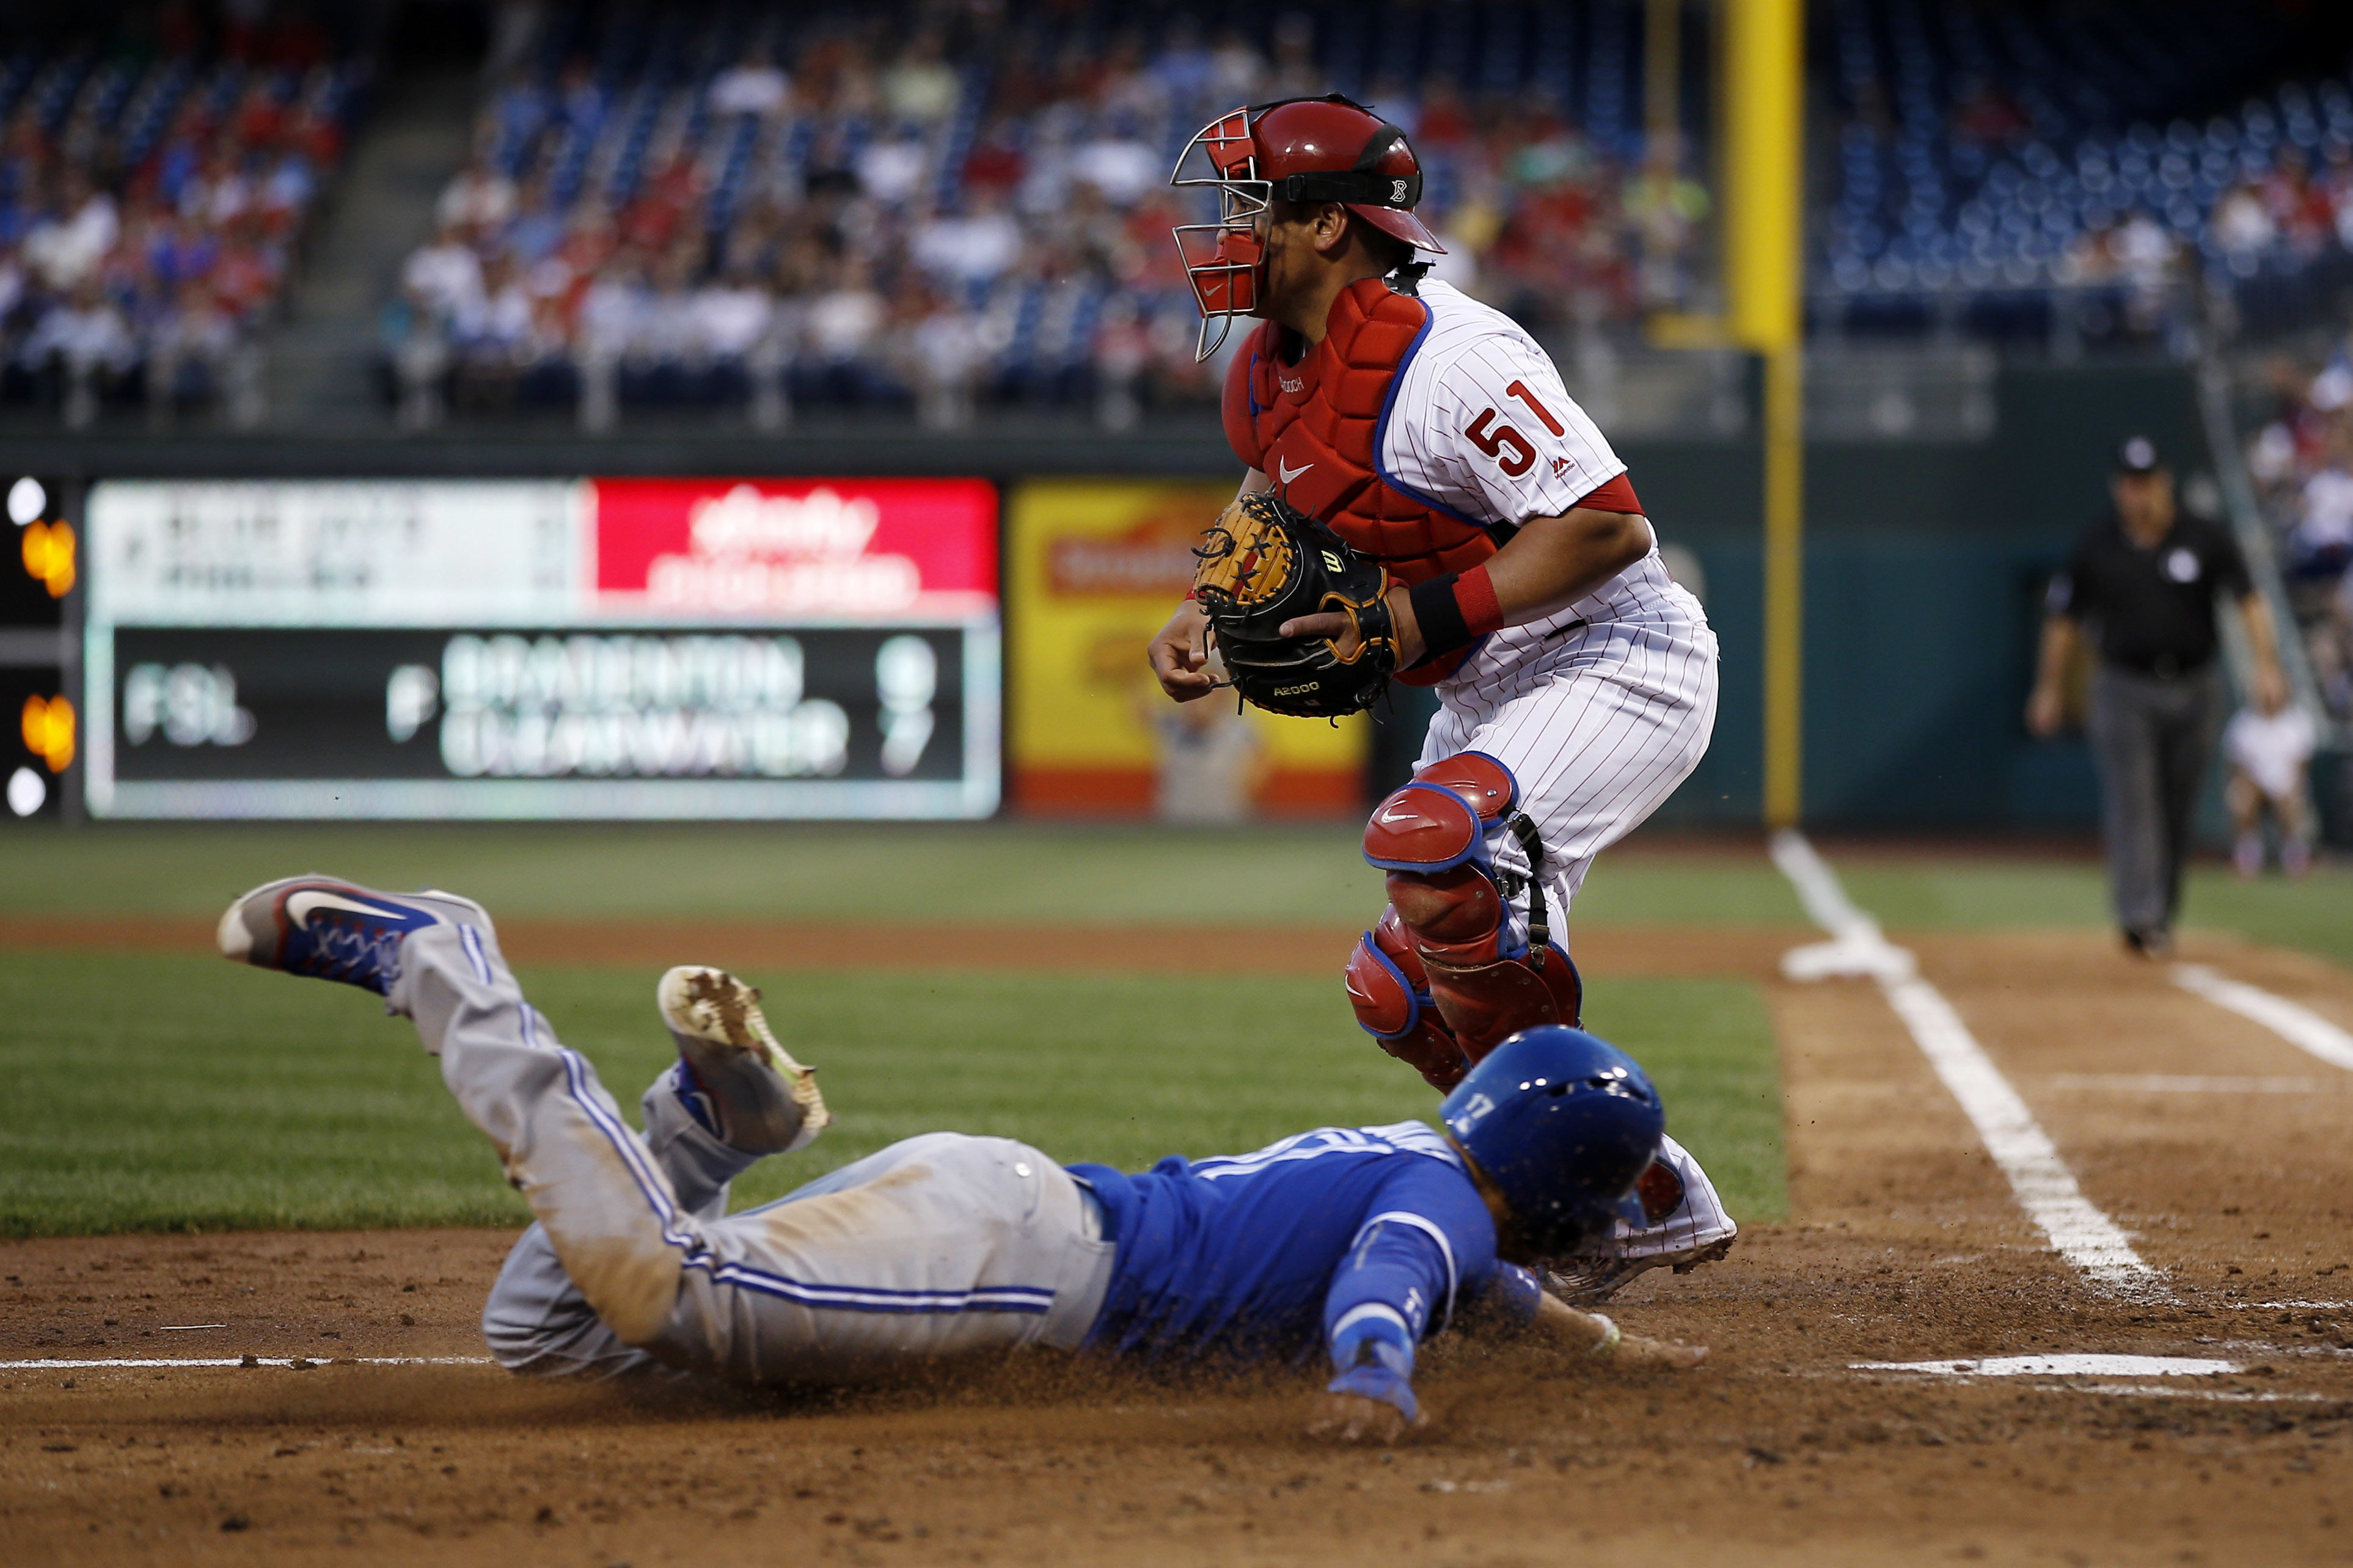 Toronto Blue Jays' Ryan Goins, bottom, scores past Philadelphia Phillies catcher Carlos Ruiz on a double by Devon Travis during the fourth inning of a baseball game, Wednesday, June 15, 2016, in Philadelphia. Travis was tagged out trying to advance to thi